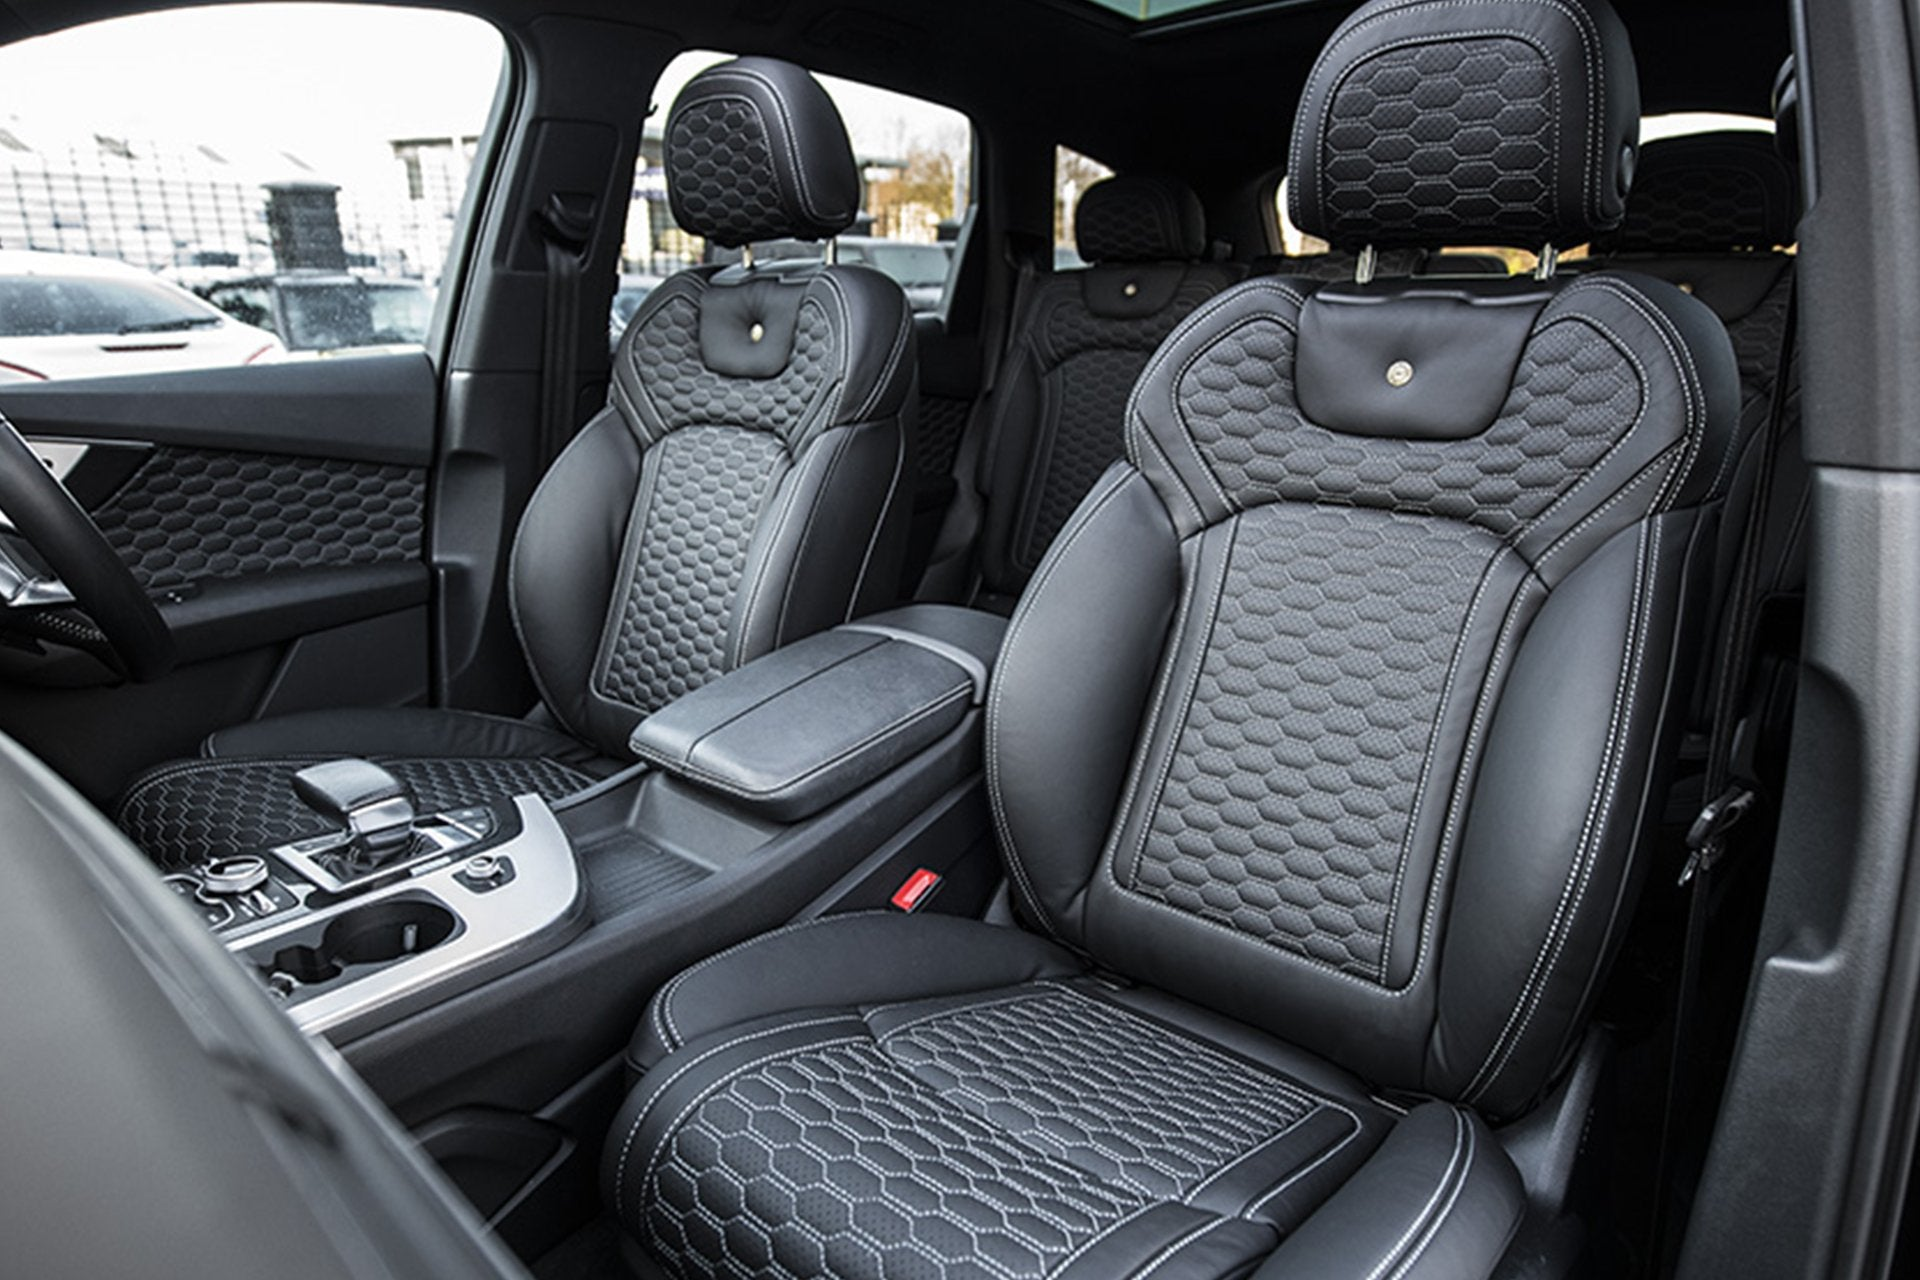 Audi Q7 (2016-Present) Leather Interior by Kahn - Image 4038